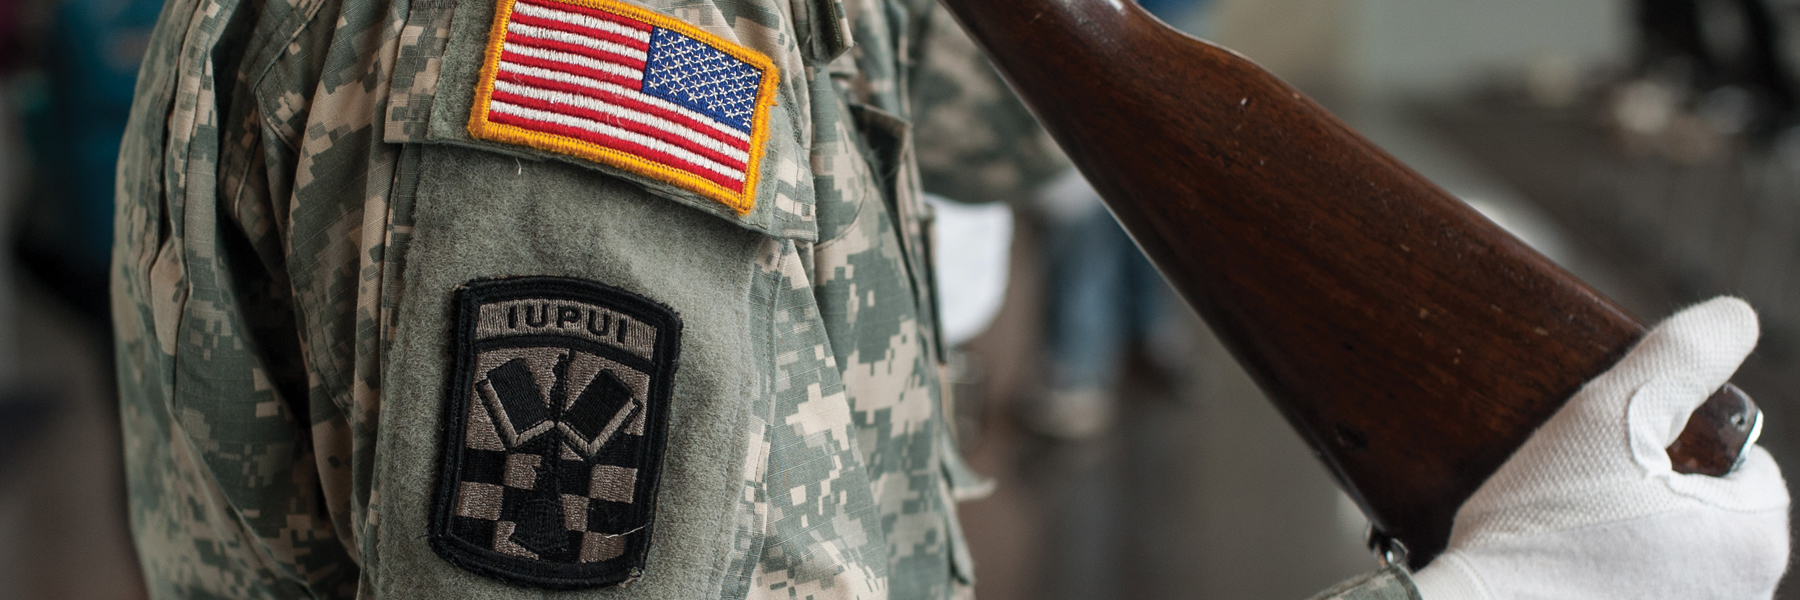 Closeup shot of student wearing military camouflage uniform with IUPUI badge and flag badge on shoulder.